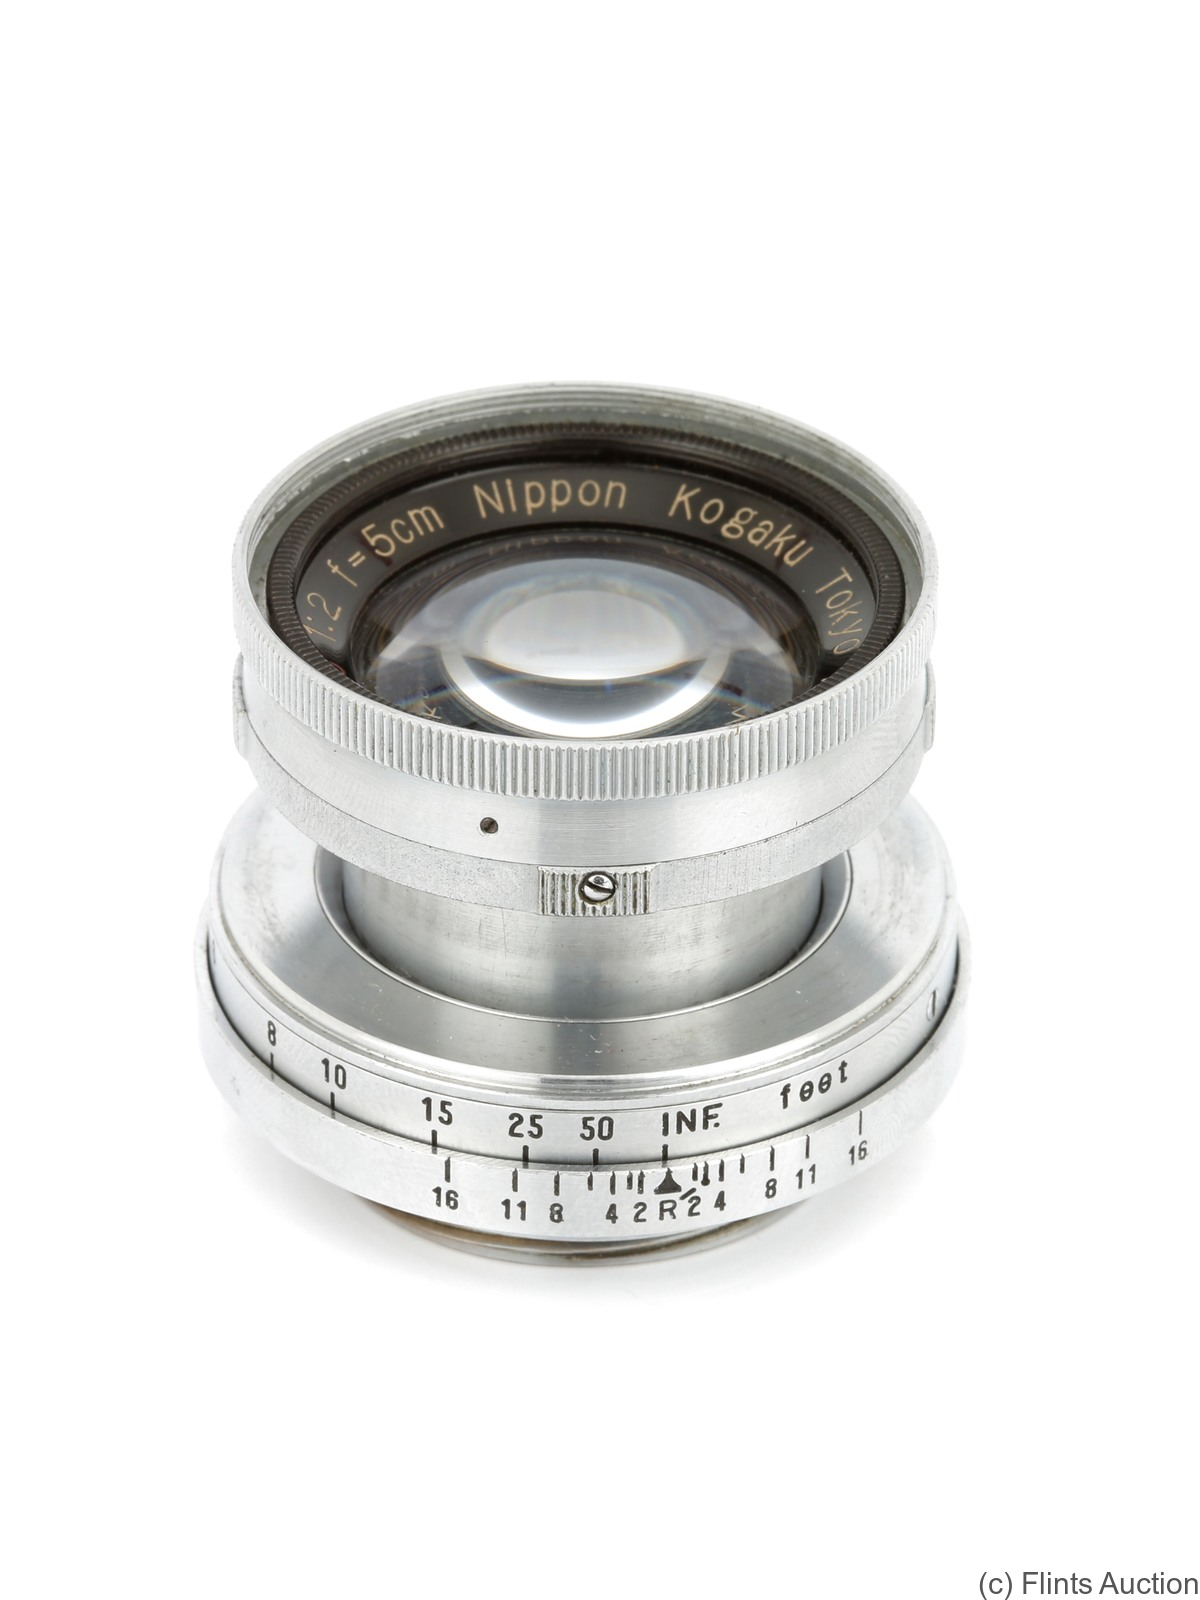 Nikon: 50mm (5cm) f2 Nikkor-H.C (M39, collapsible) camera